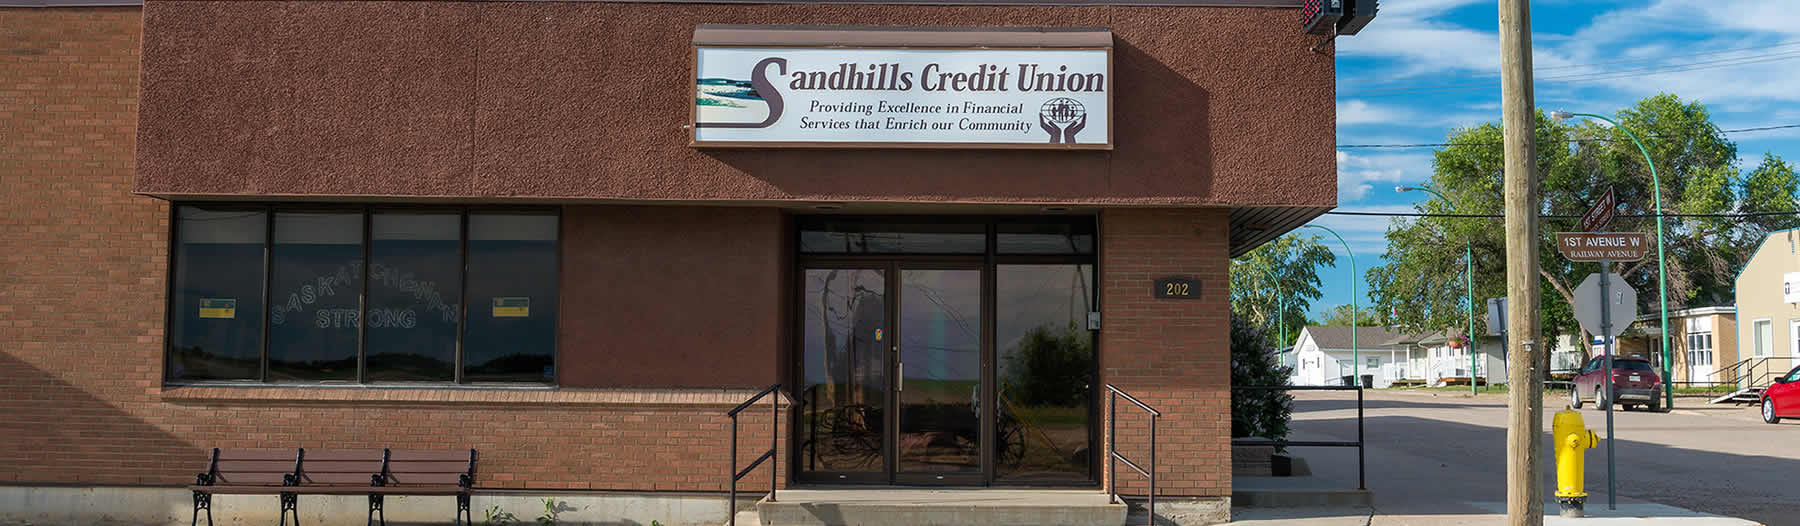 Sandhills Credit Union - located in Leader, Saskatchewan